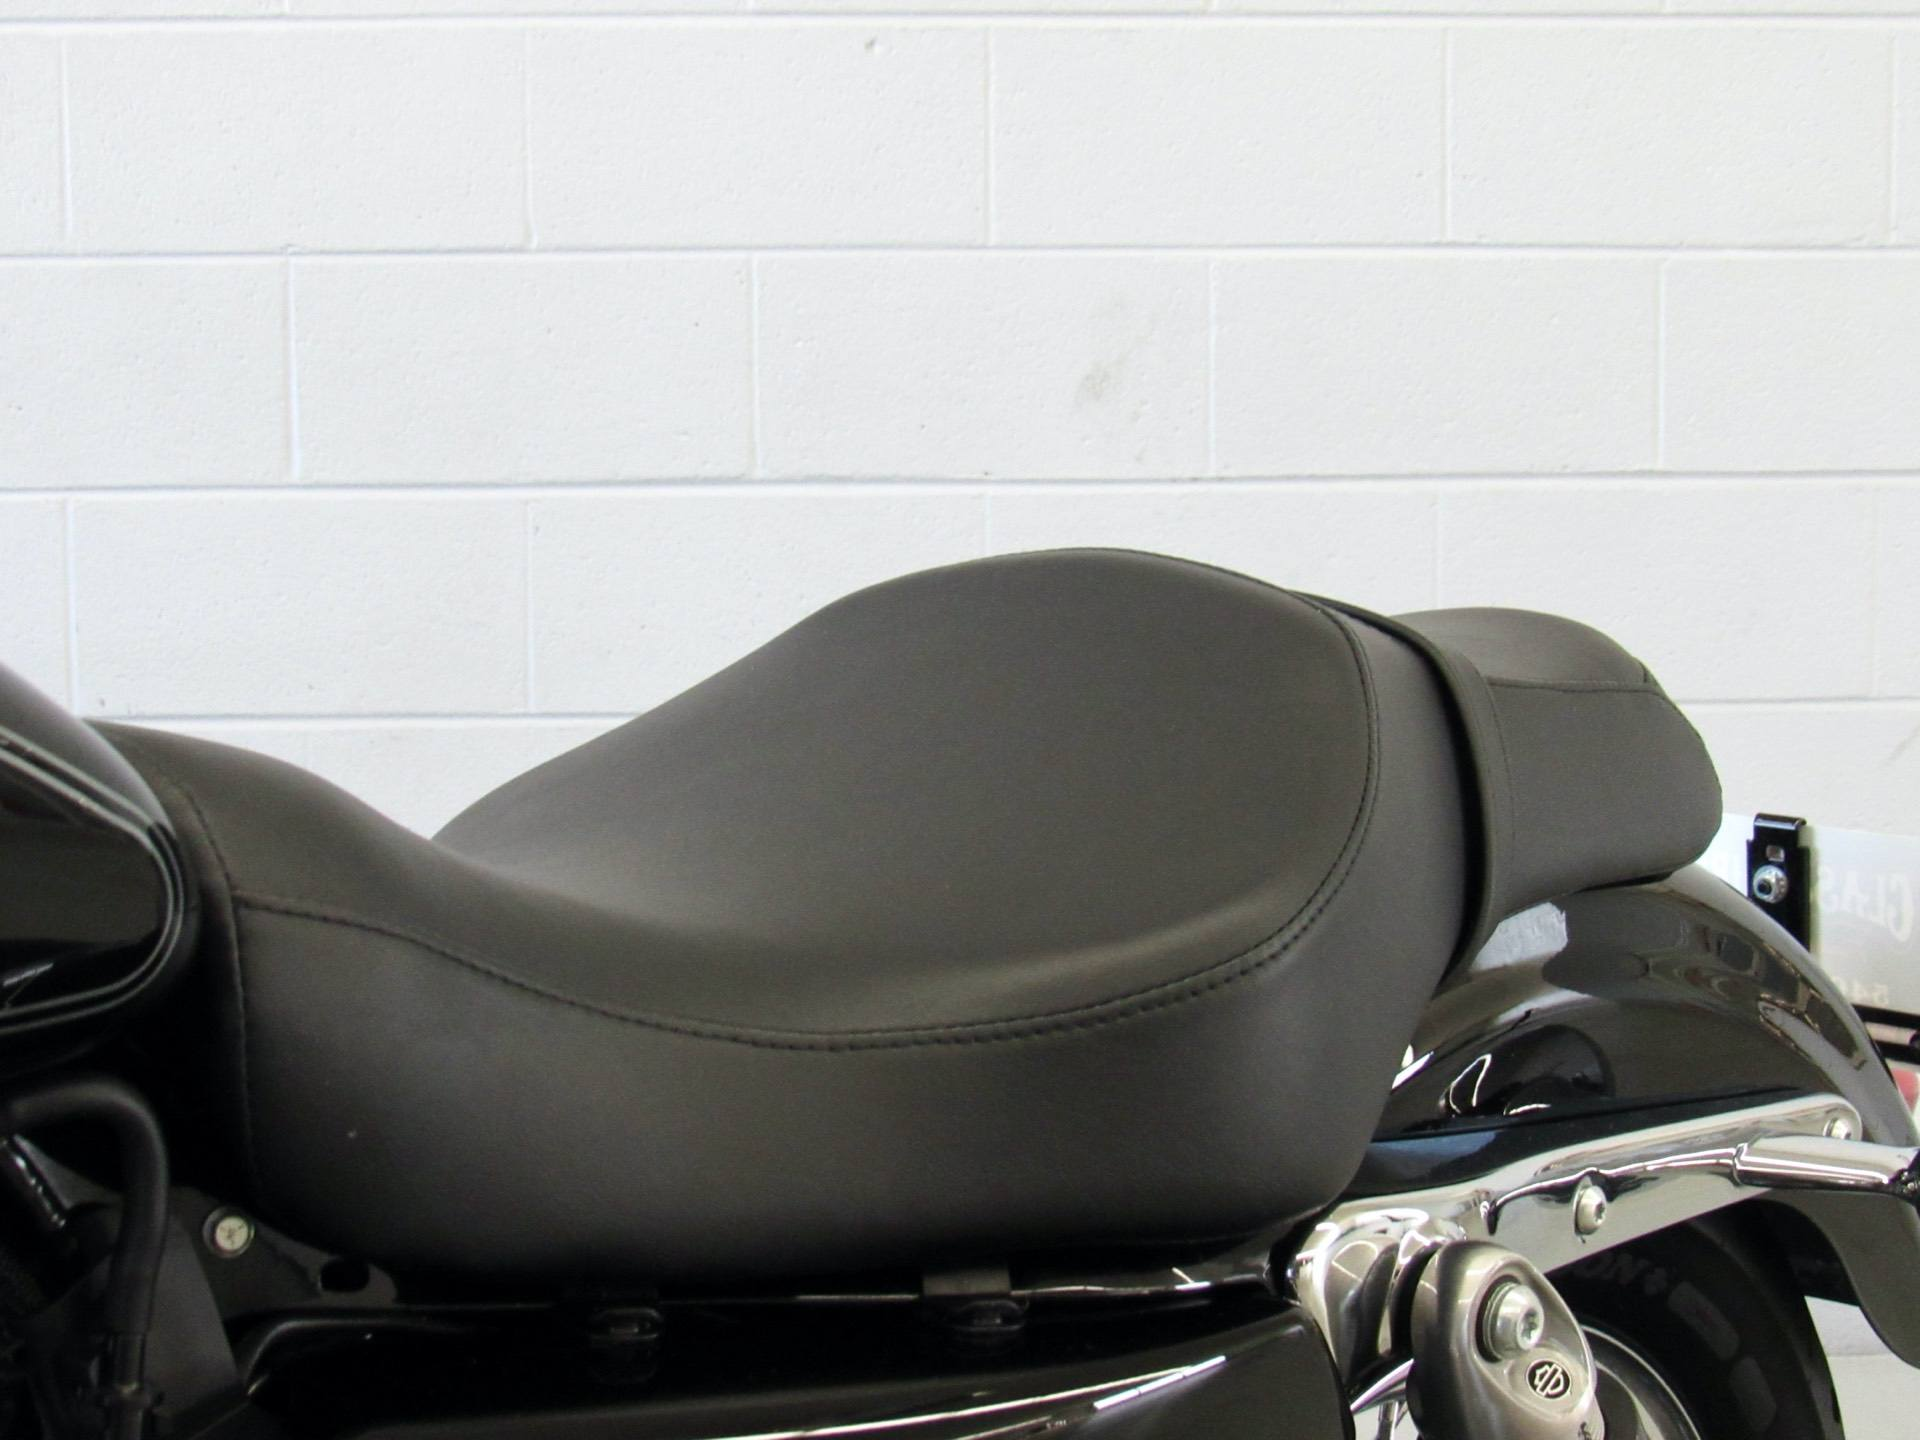 2017 Harley-Davidson 1200 Custom in Fredericksburg, Virginia - Photo 21